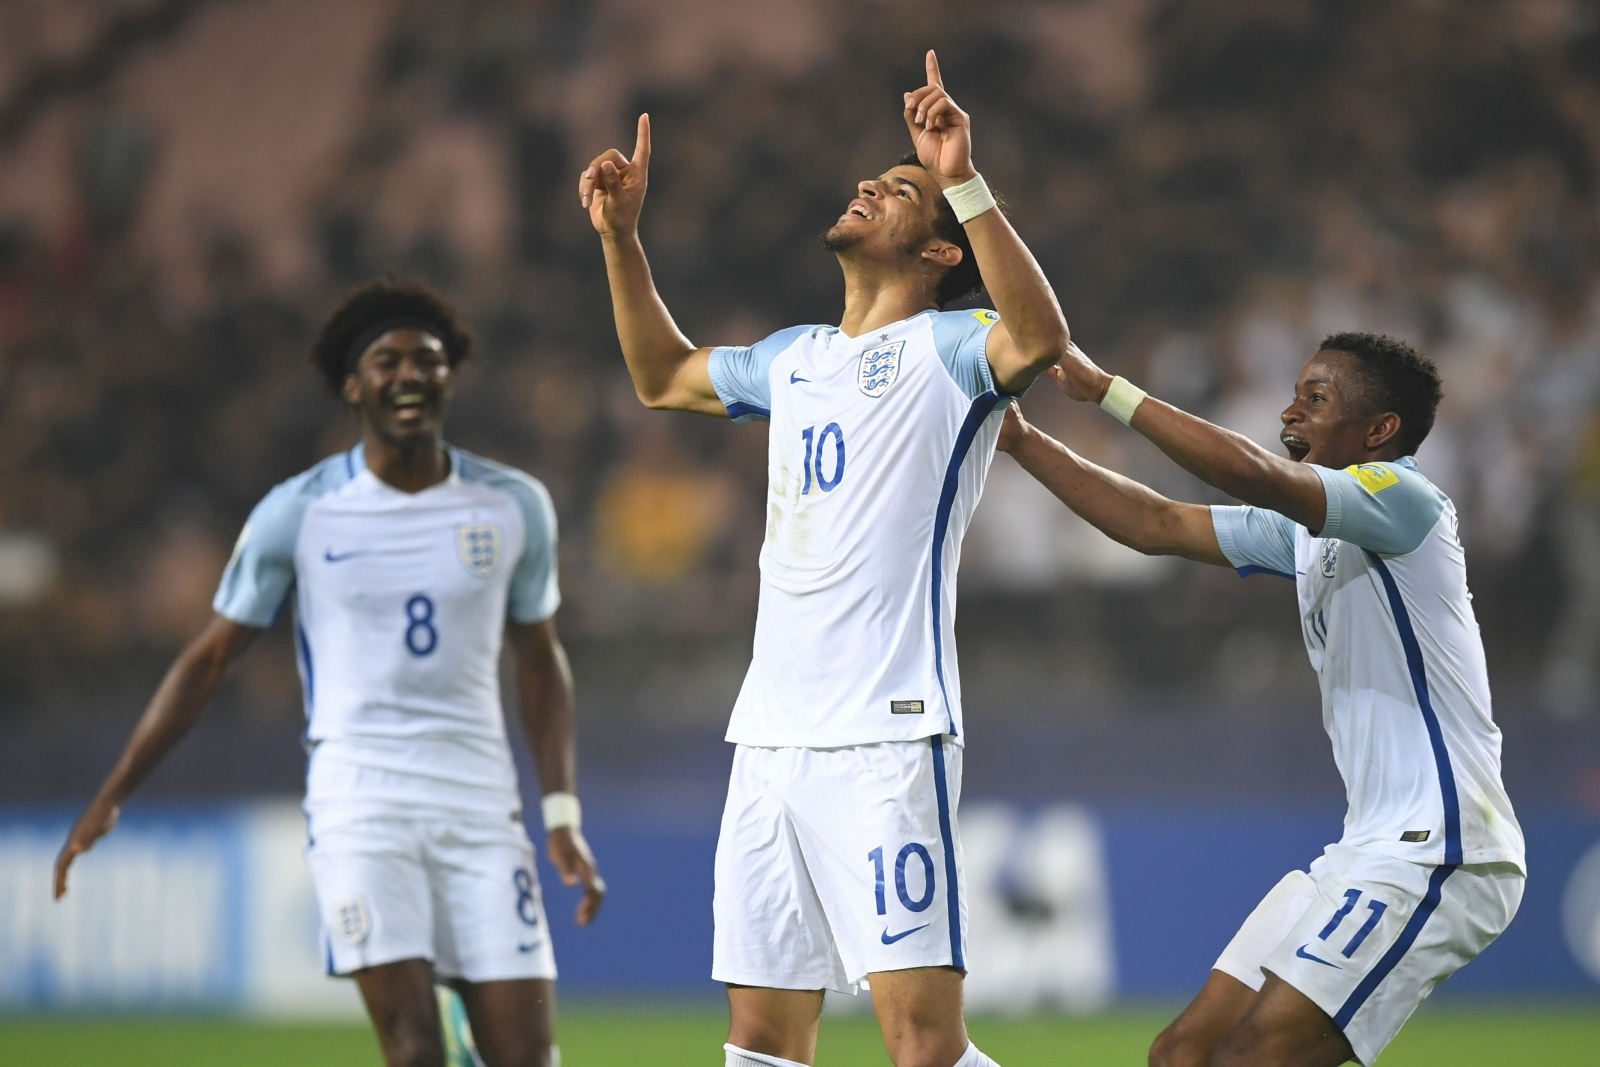 Dominic Solanke stars as England's U20s reach World Cup final